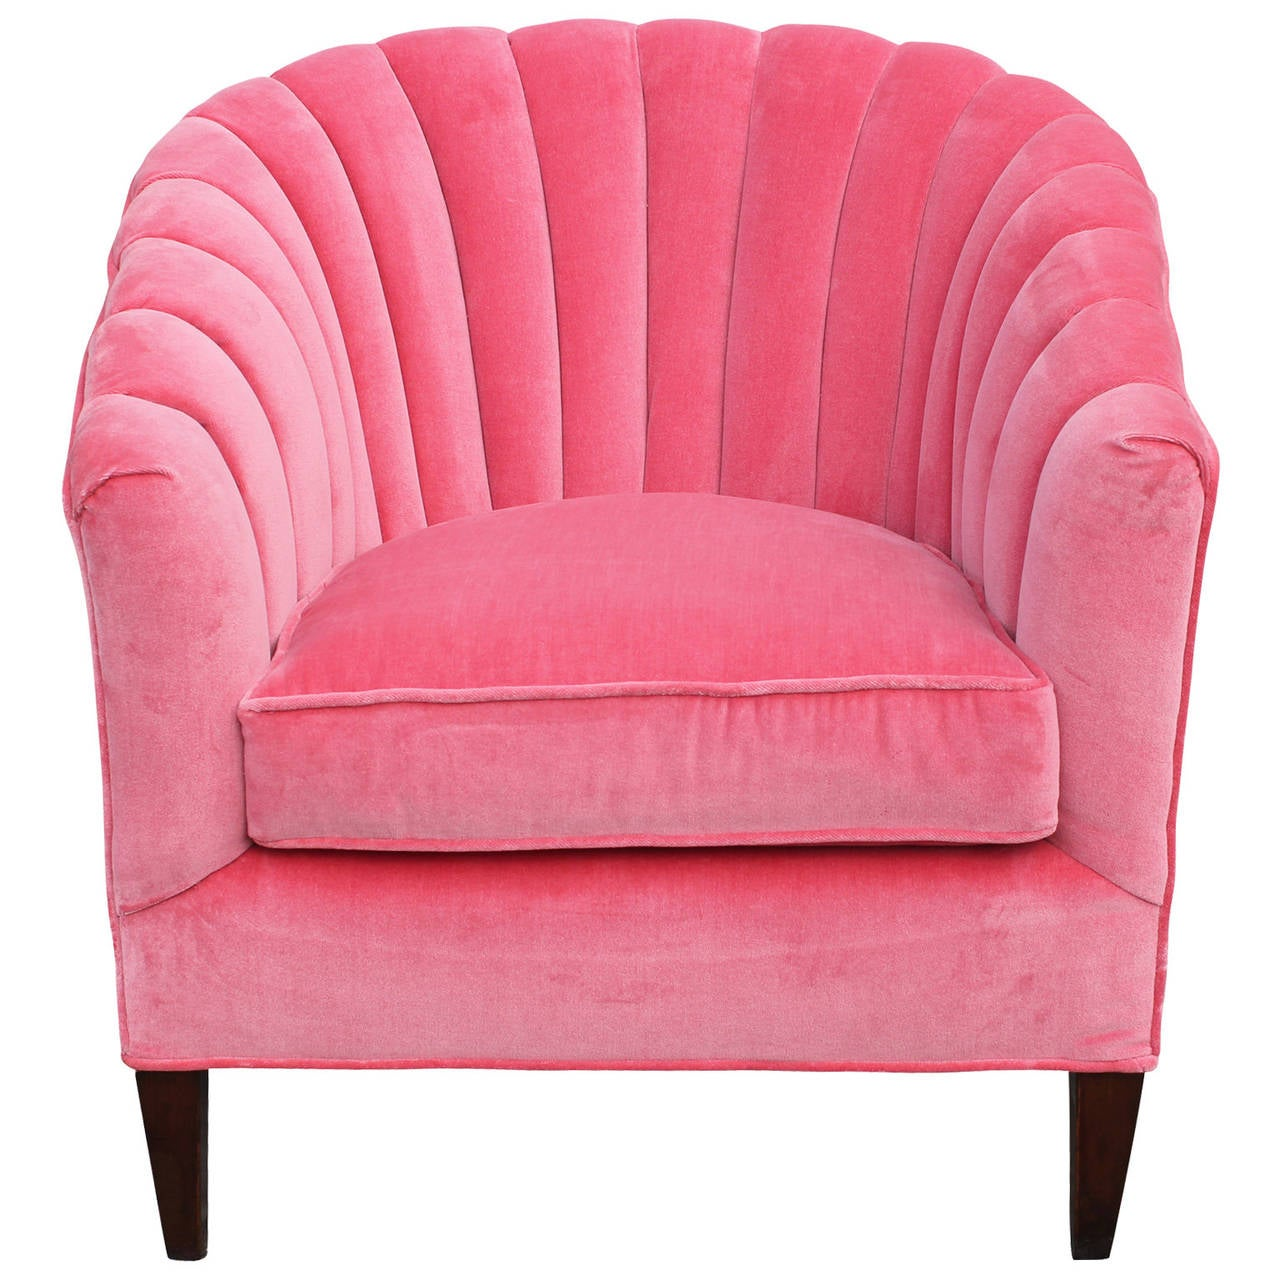 Fabulous Pair Of Pink Velvet Barrel Back Chairs At 1stdibs